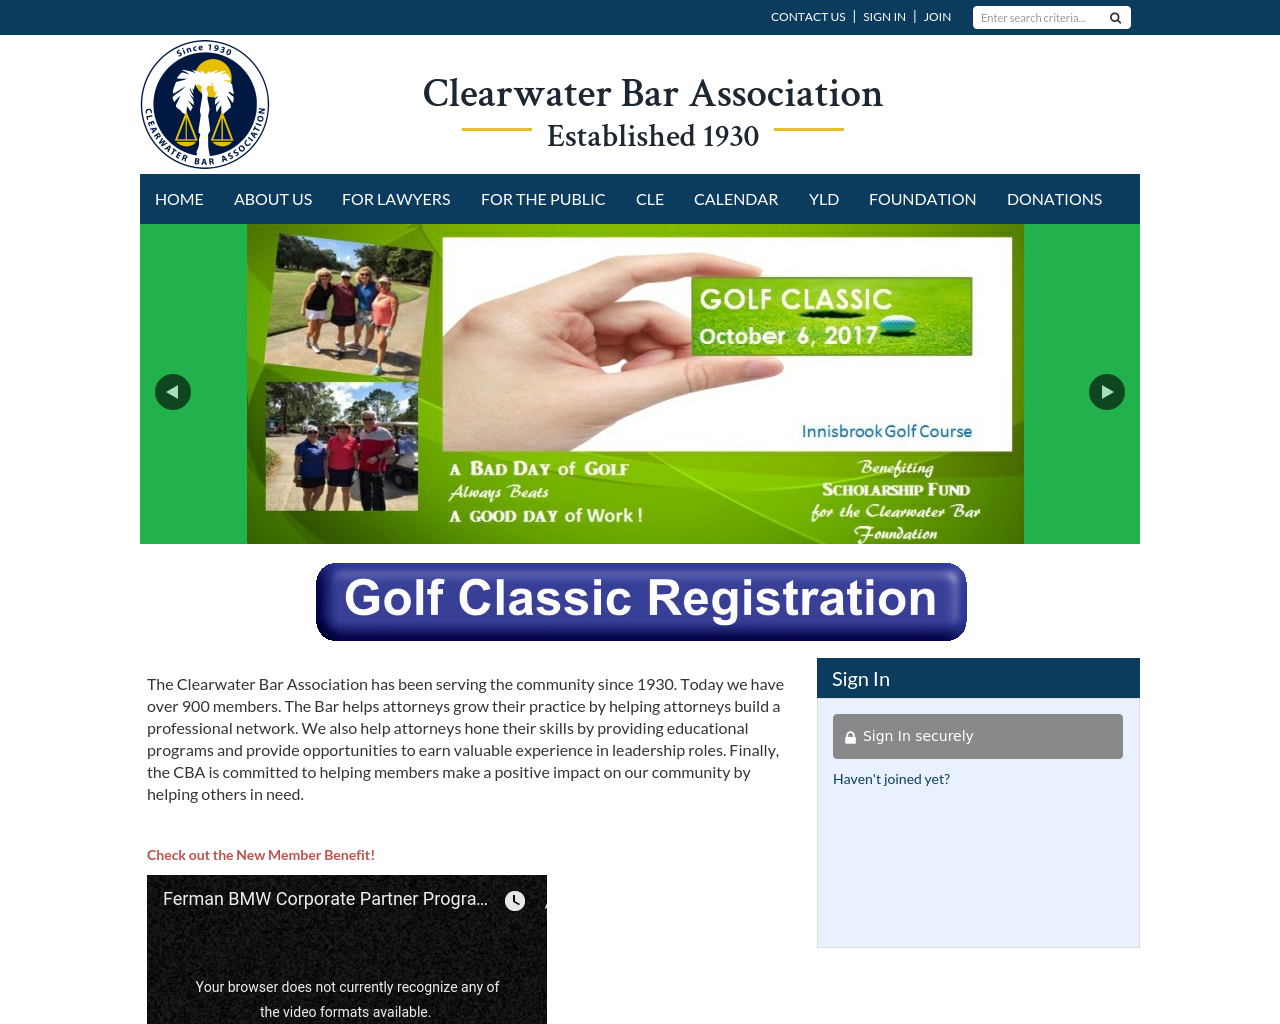 Clearwater-Bar-Association-Advertising-Reviews-Pricing